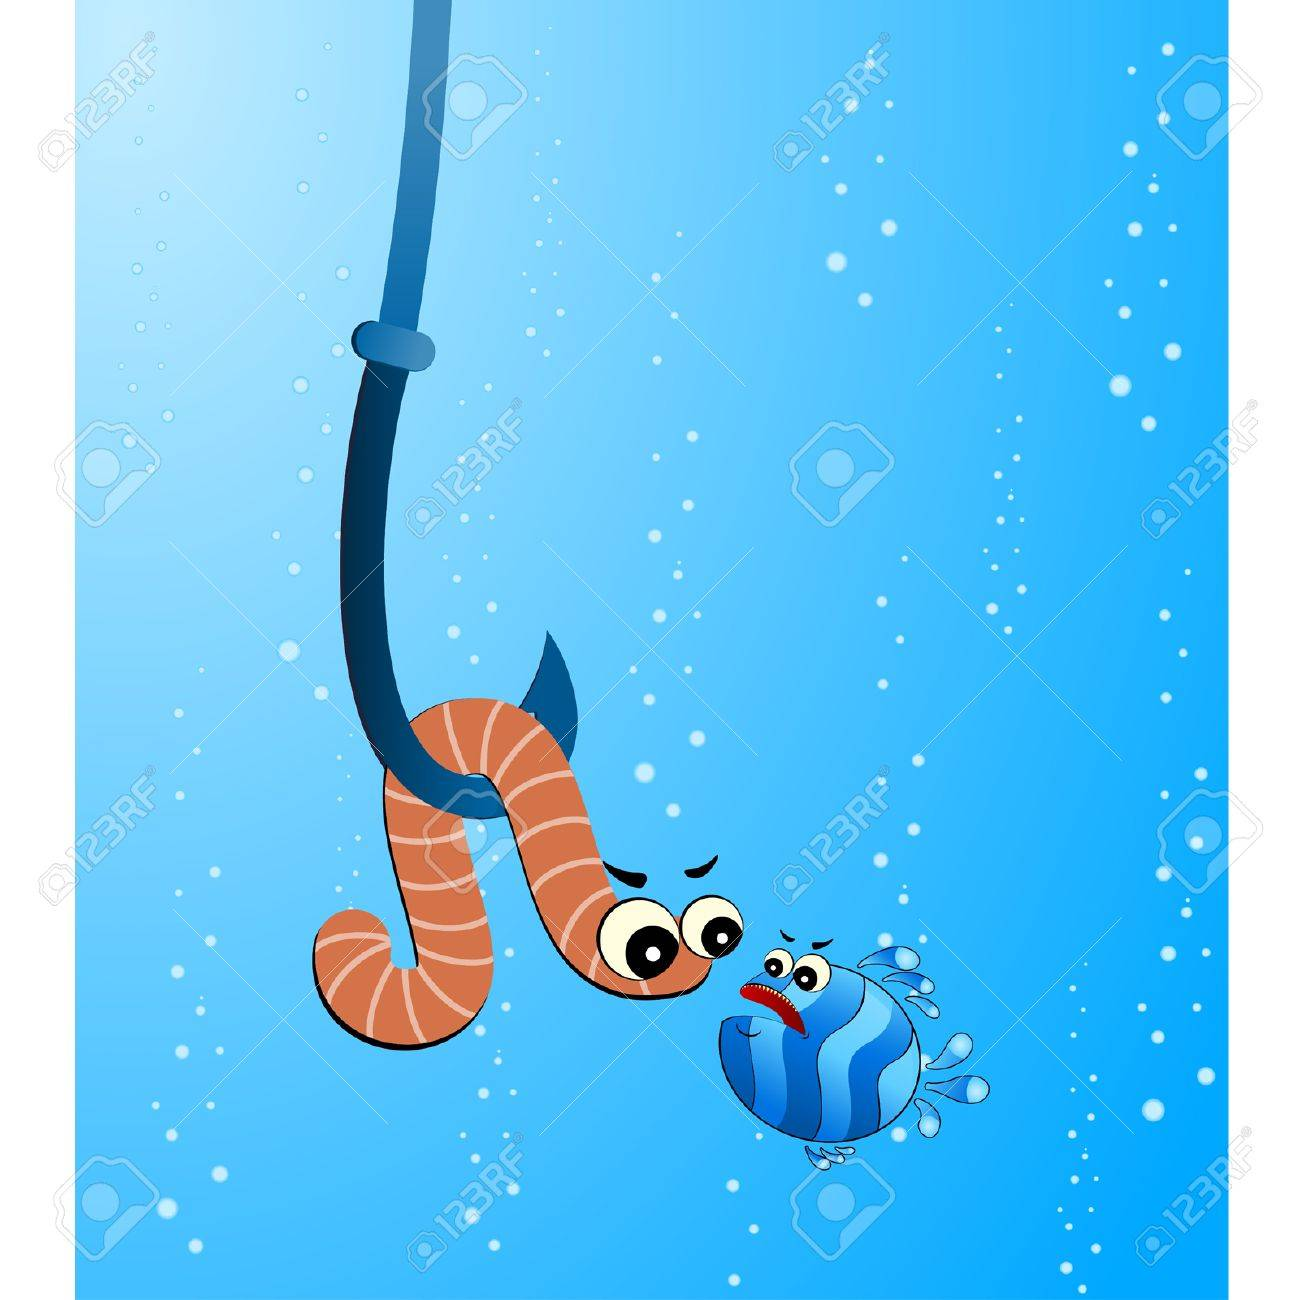 Fish Eating Fish Cartoon Little Cartoon Funny Fish Eats